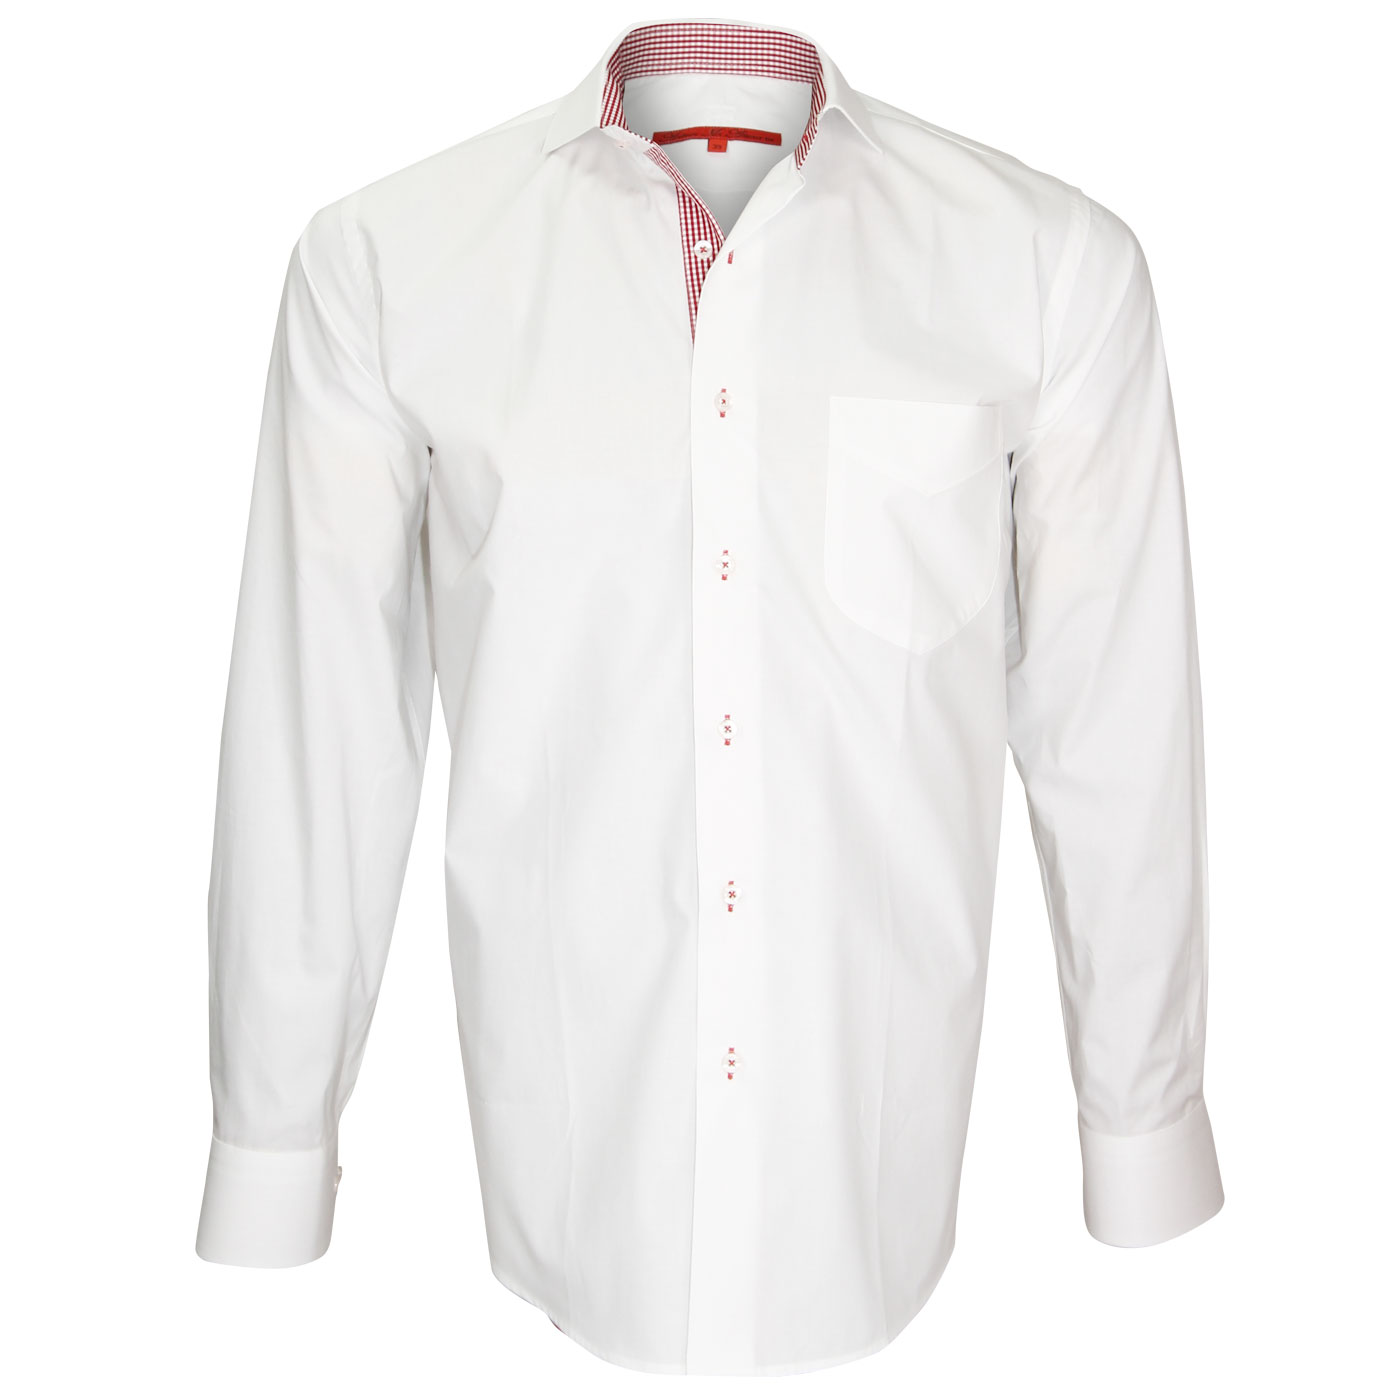 Cotton shirt for men, selling shirt: Webmenshirts